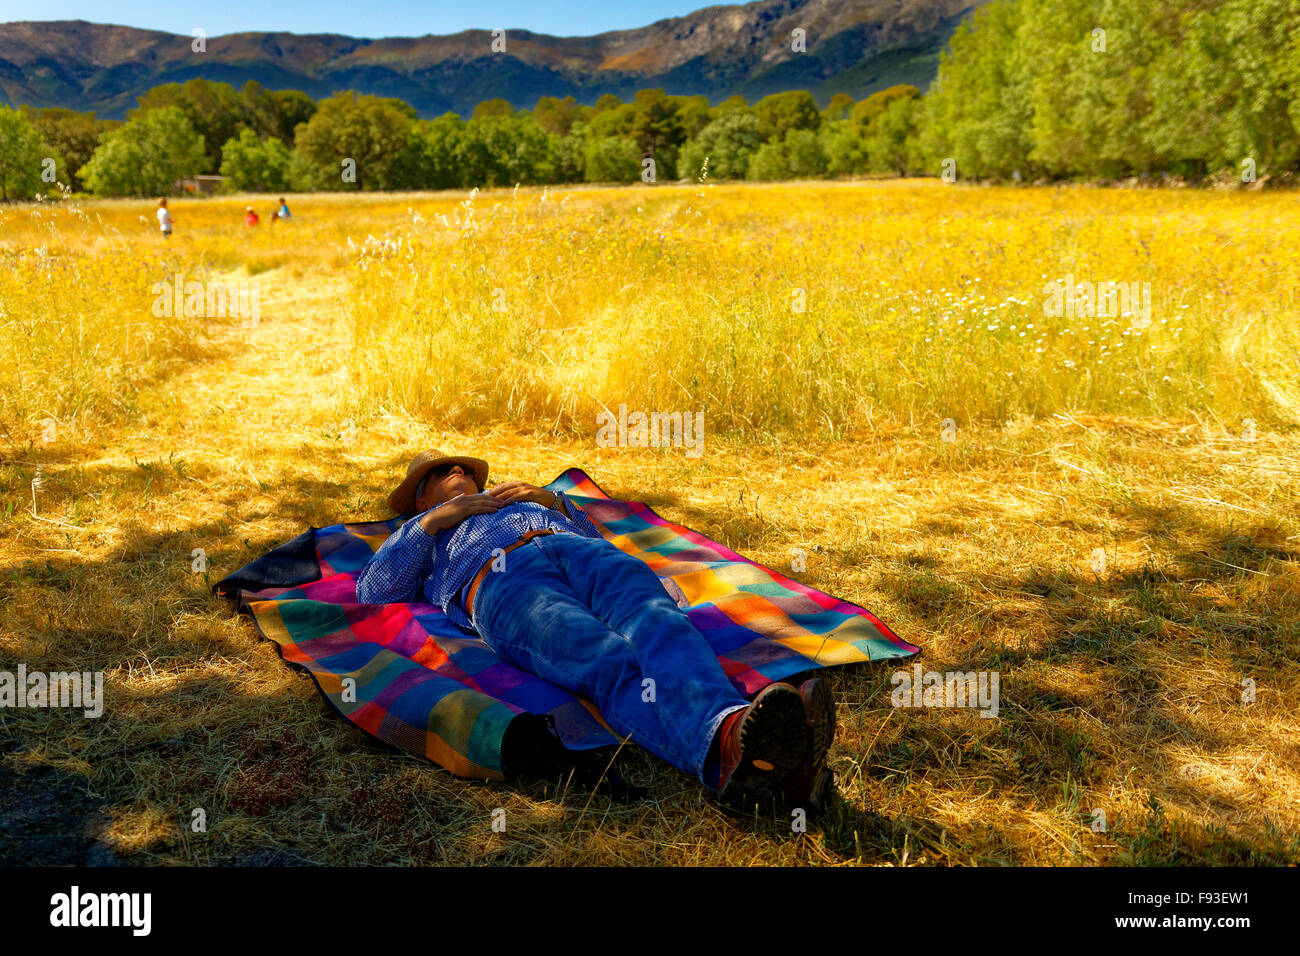 a peasant taking siesta in a yellow field, while others are working - Stock Image